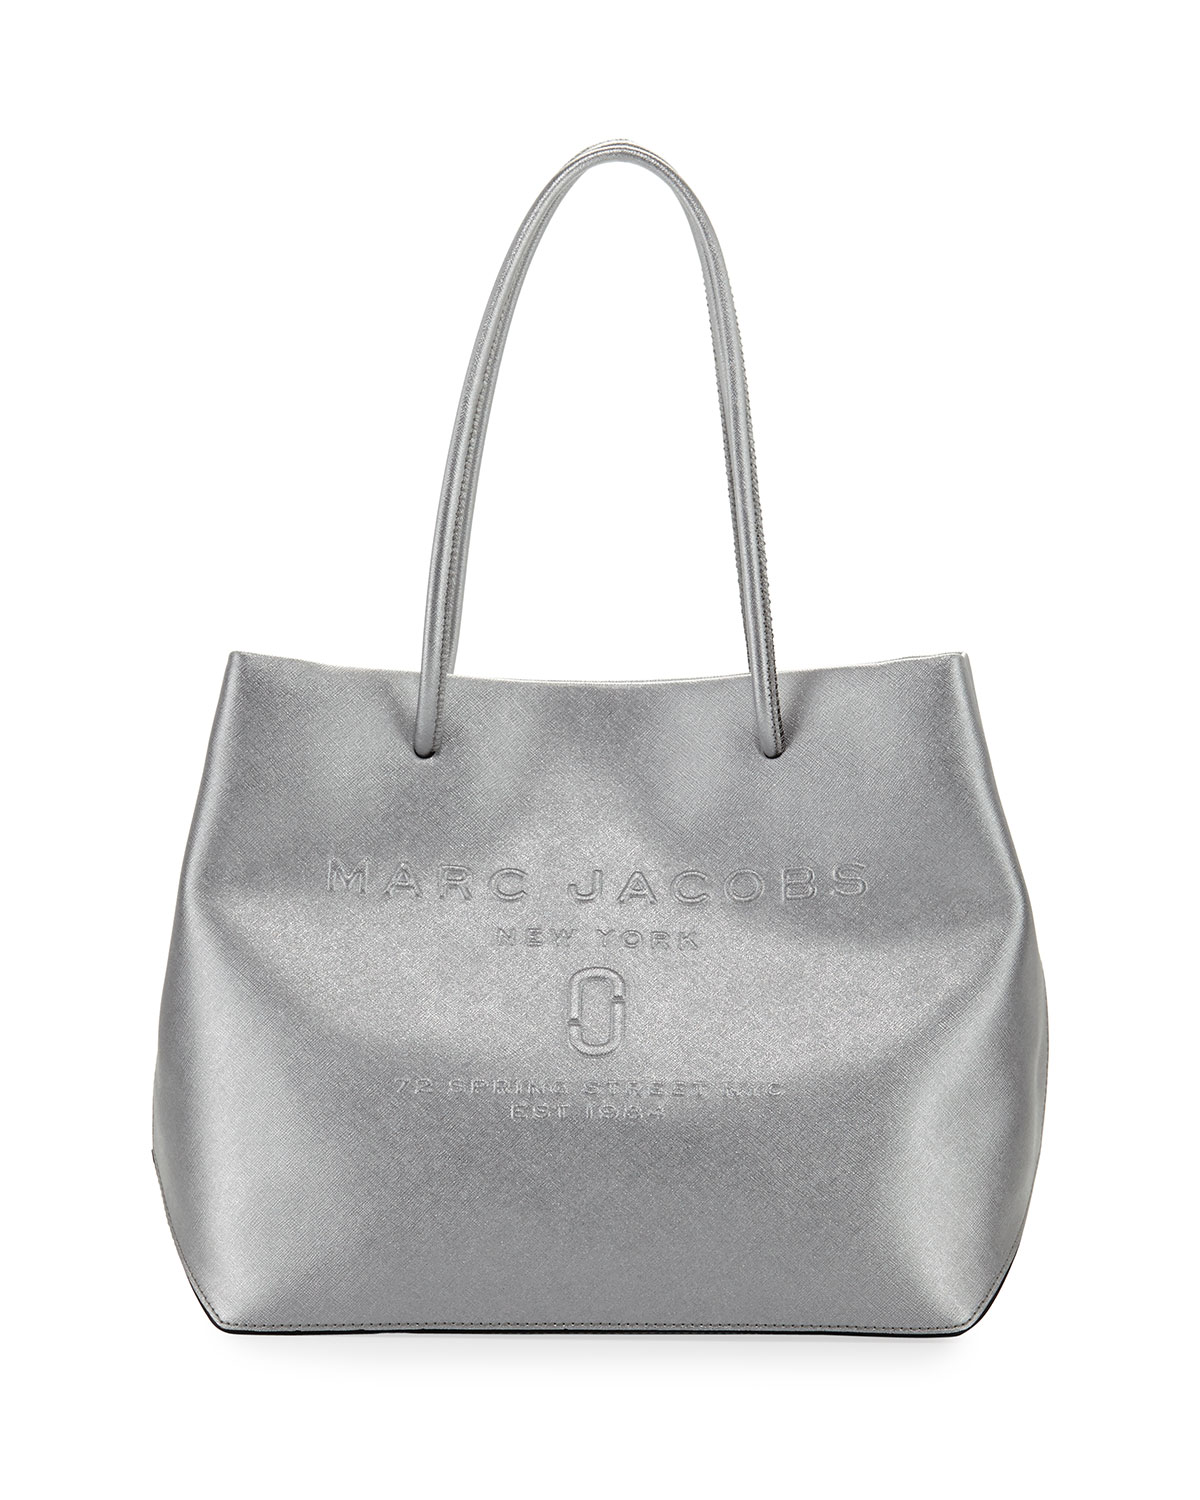 fed31dbca Marc Jacobs Metallic Logo Shopper Tote Bag | Neiman Marcus